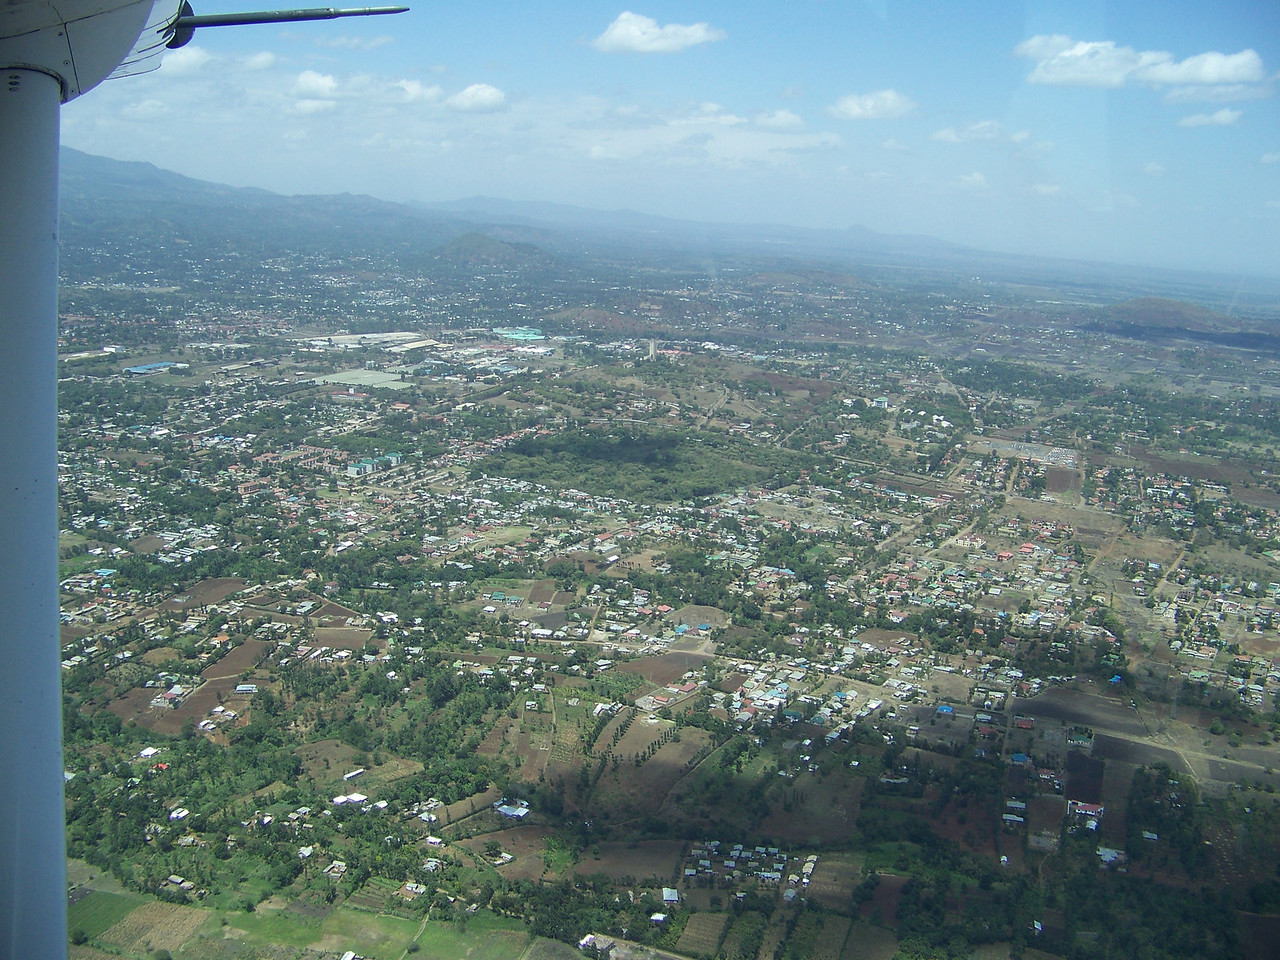 0960 - View of Arusha Area Just After Take Off from Arusha Airport on ZanAir Heading to Zanzibar - Arusha - Tanzania.JPG